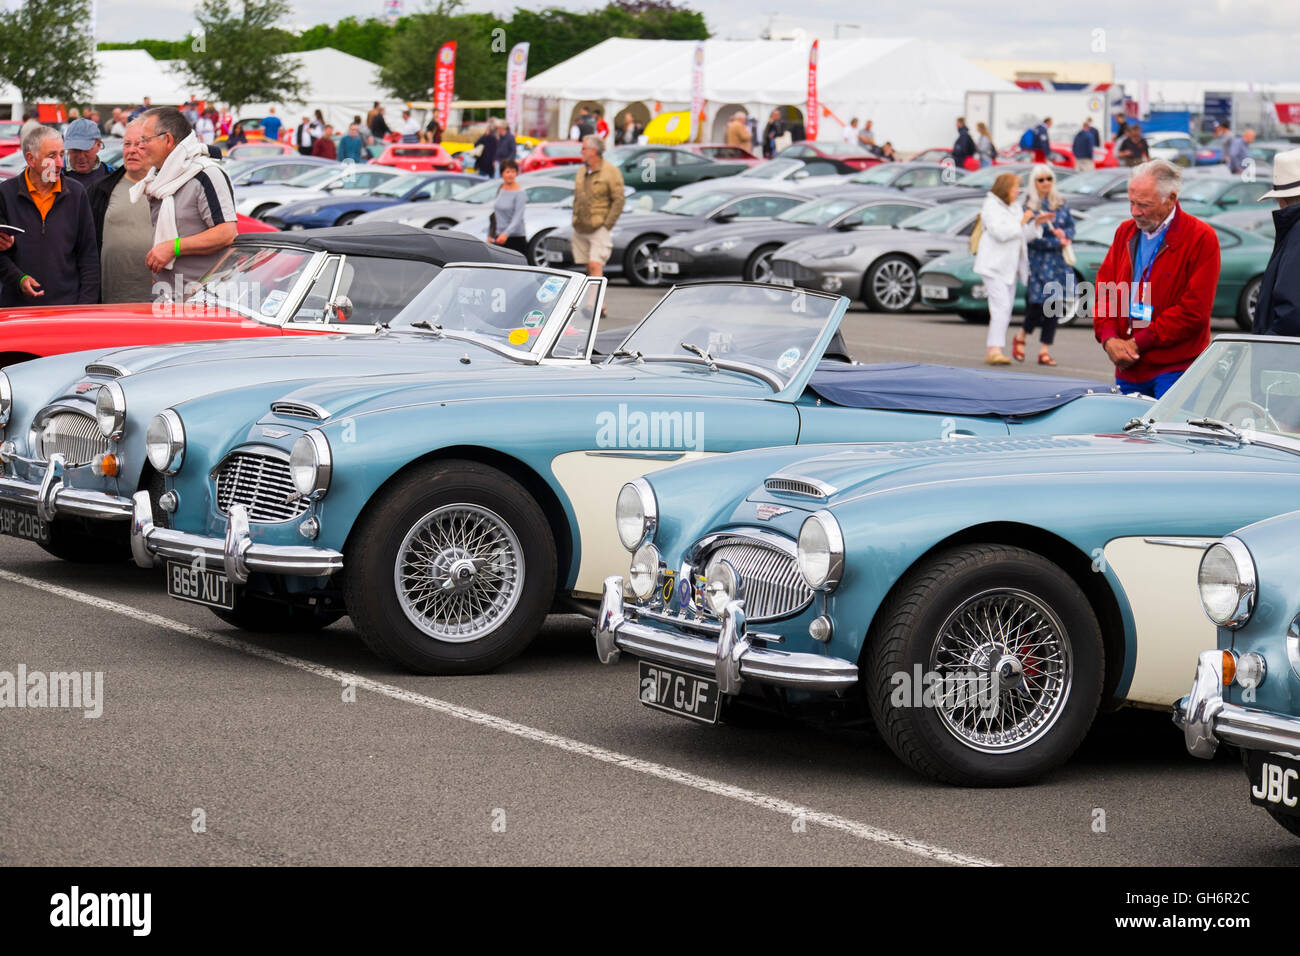 Austin Healey sports cars on display at the 2016 Silverstone Classic event, England, UK - Stock Image